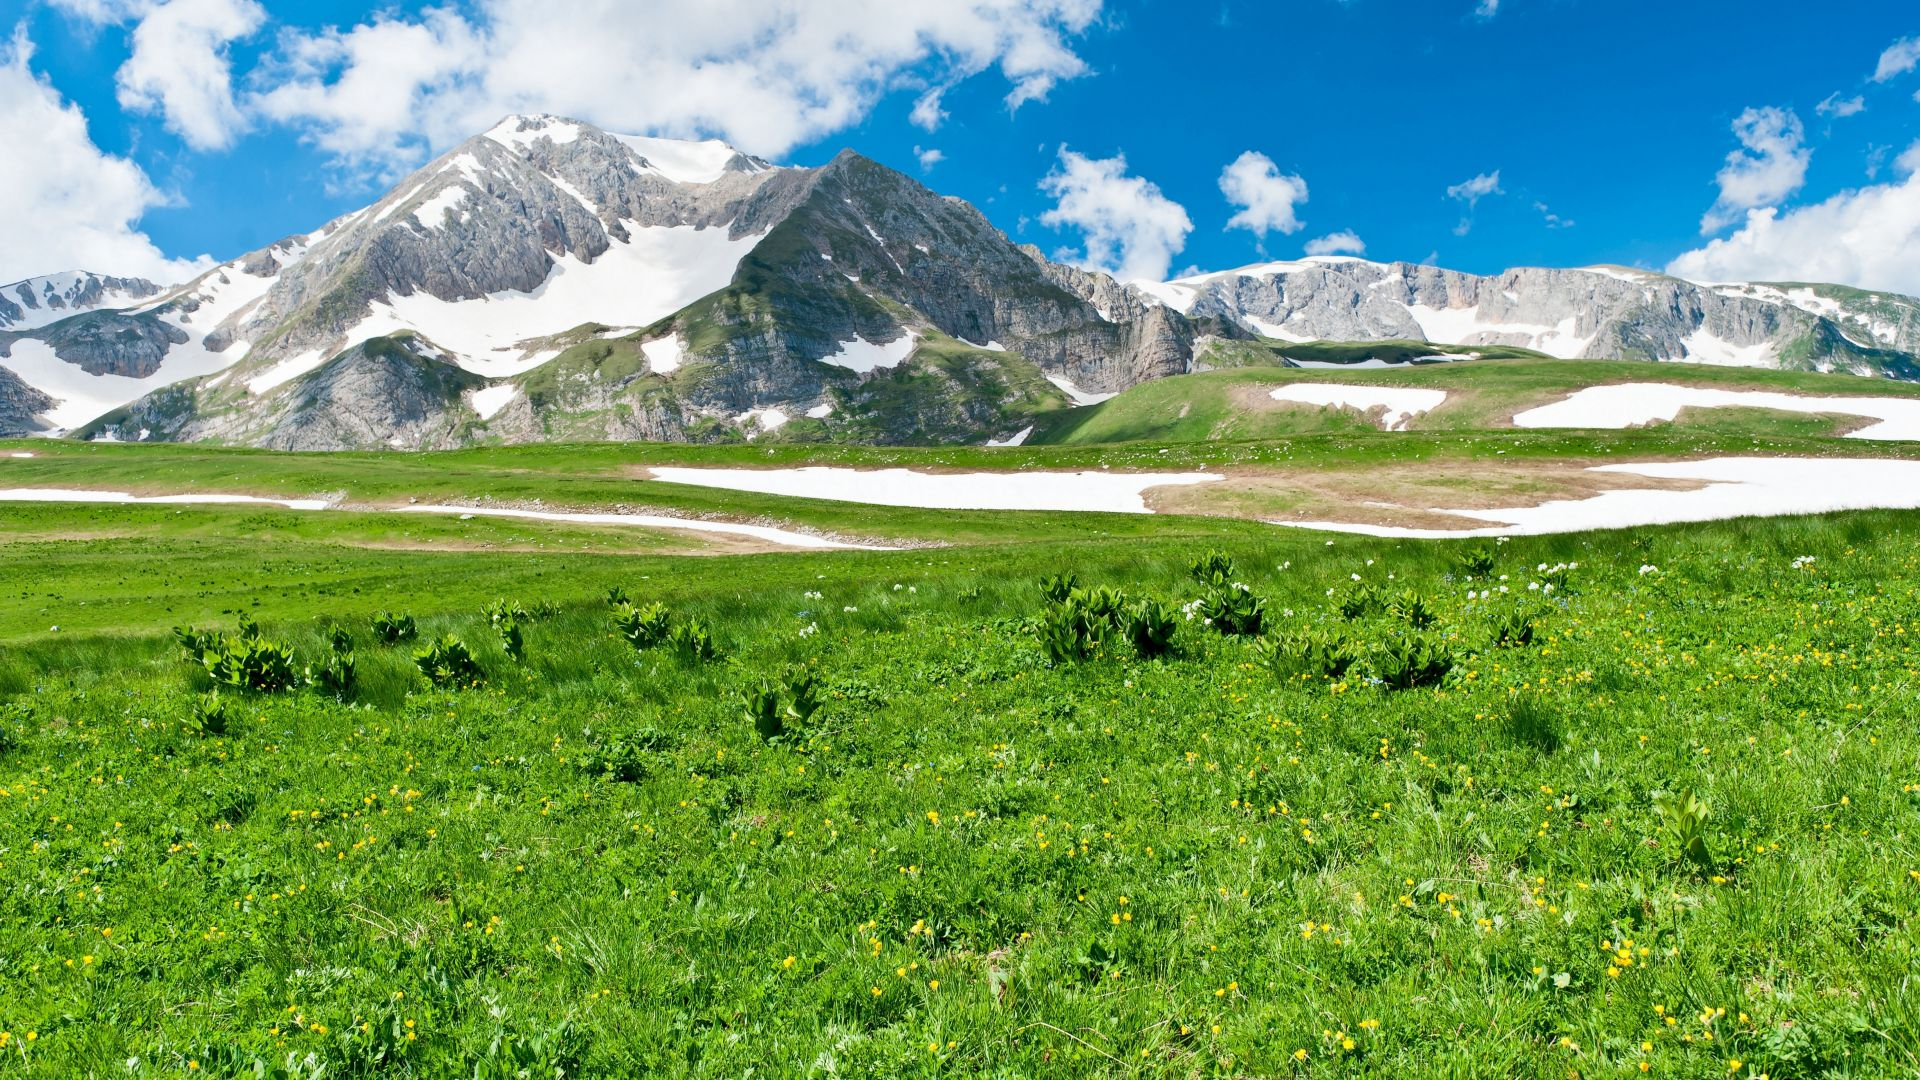 Горы, луга, небо, трава, Mountains, meadows, sky, grass